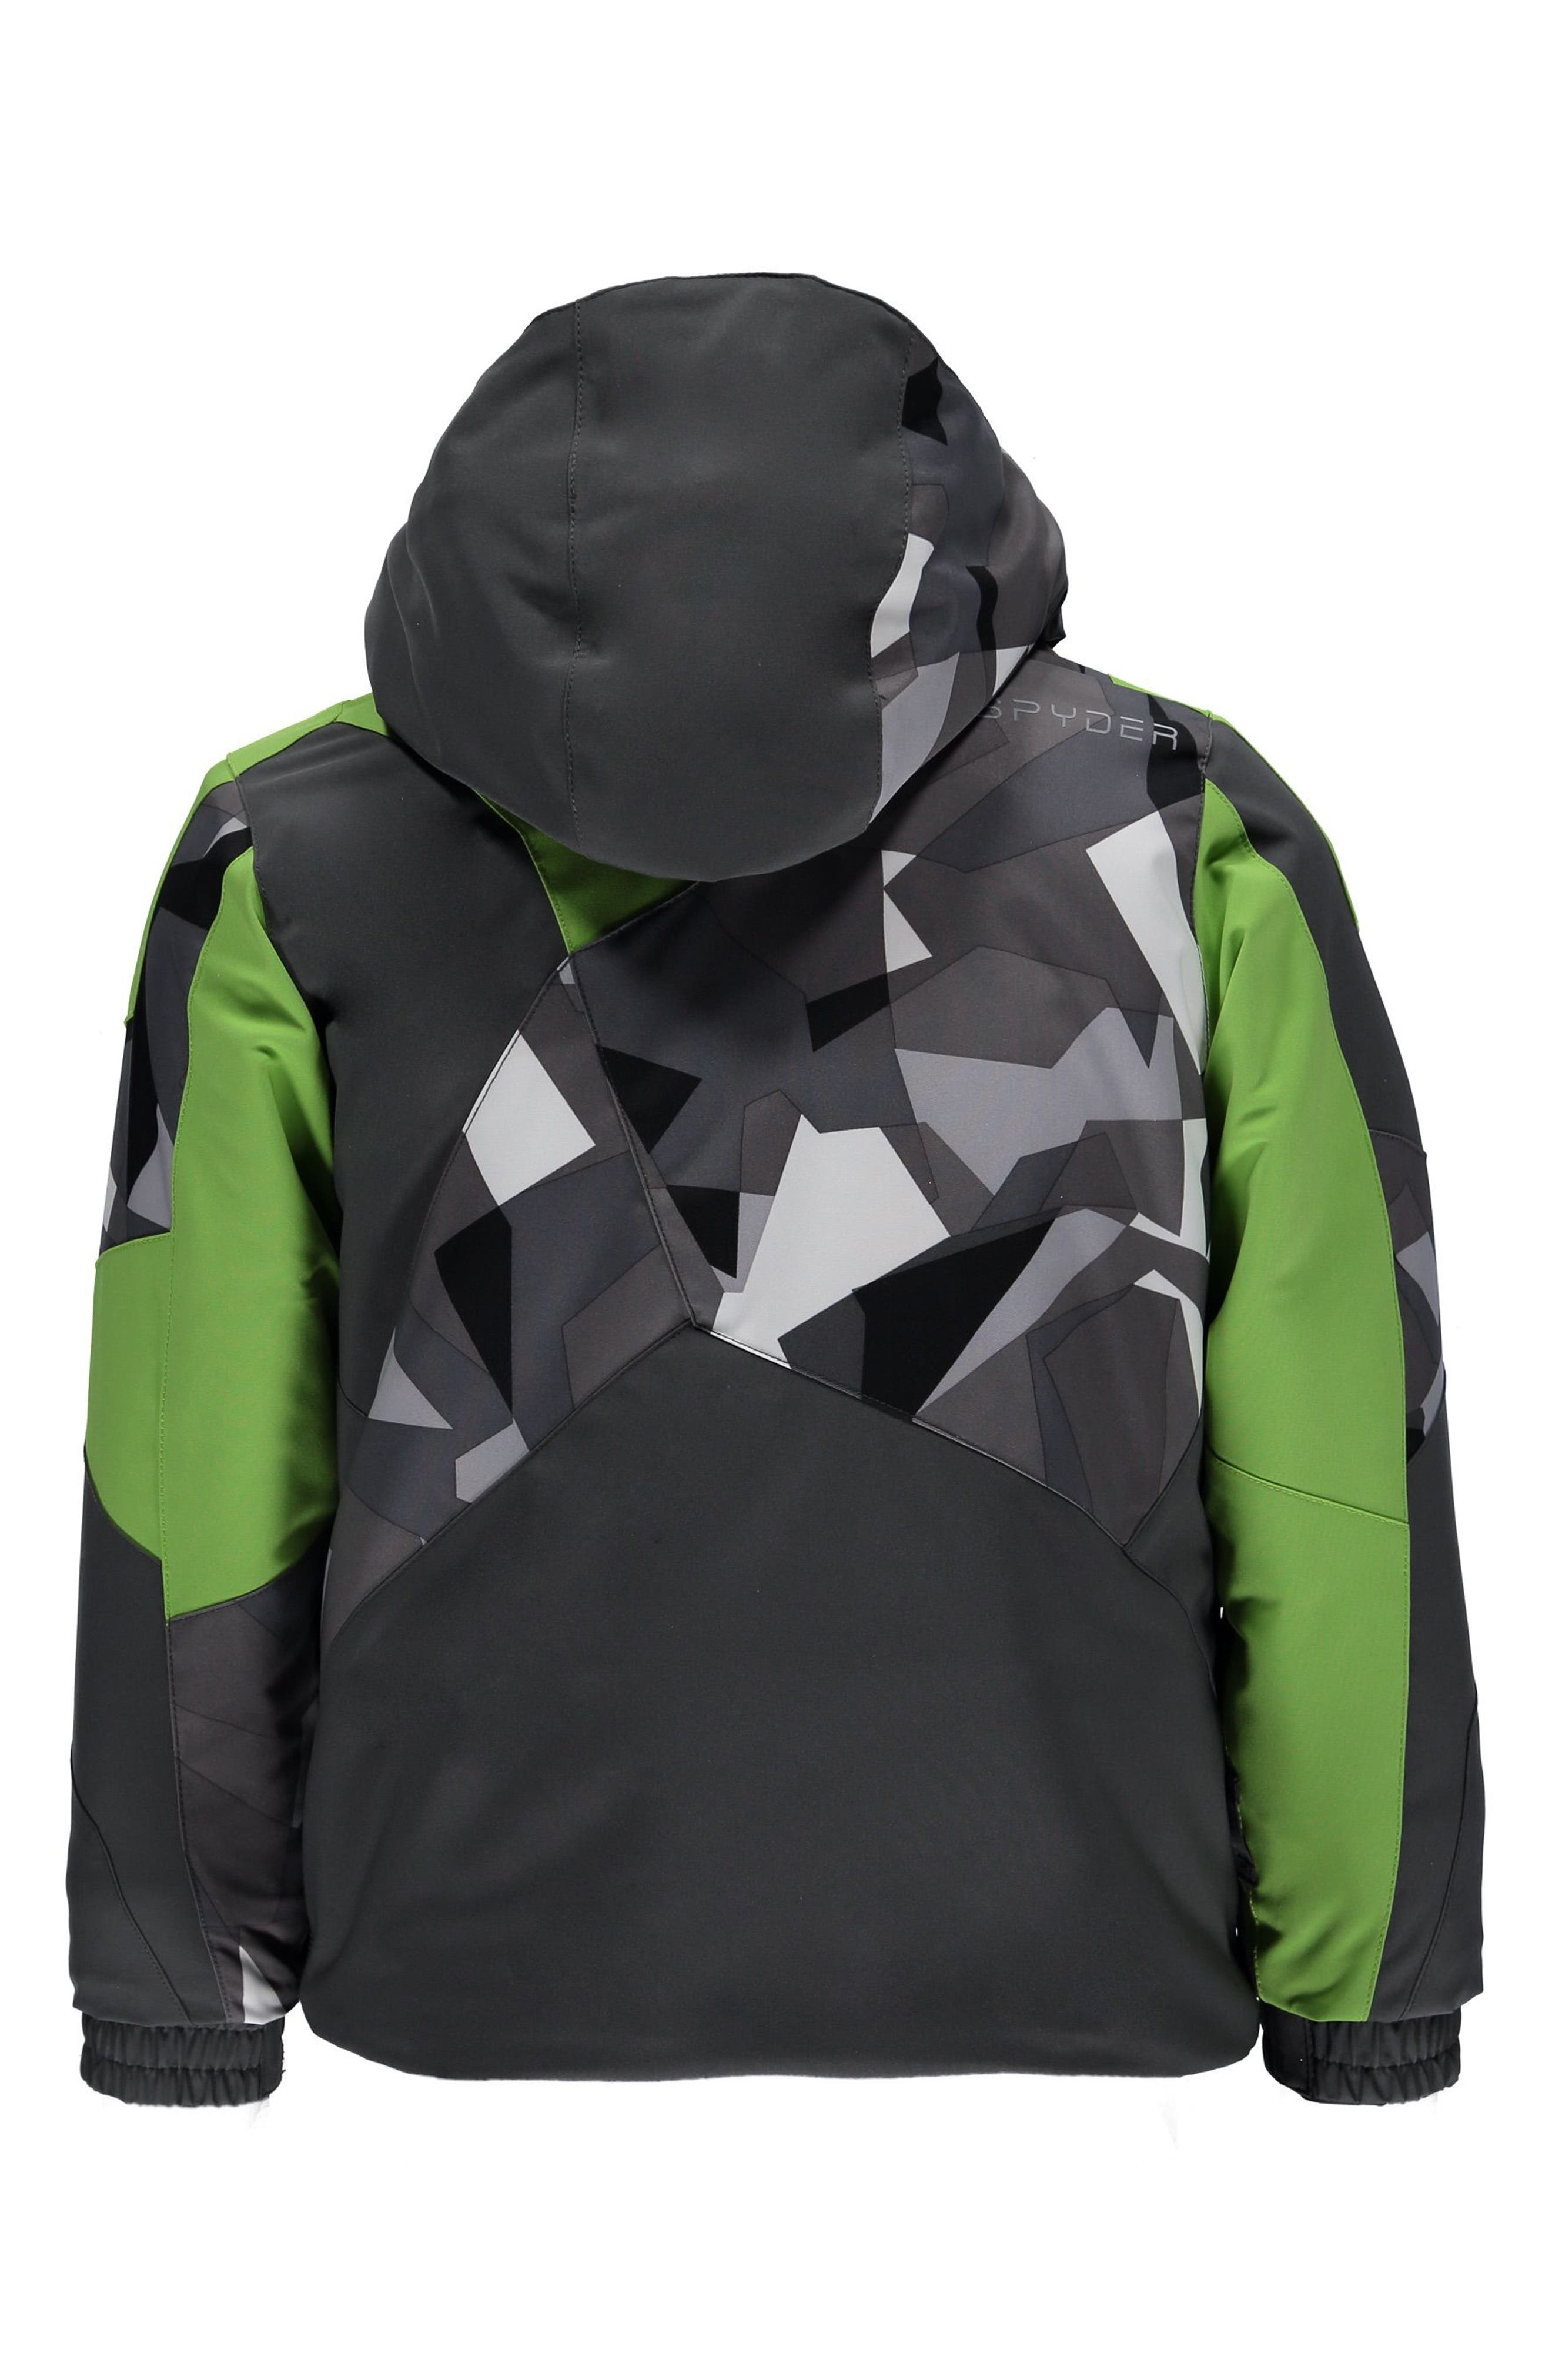 Mini Leader Insulated Jacket,                             Main thumbnail 1, color,                             069